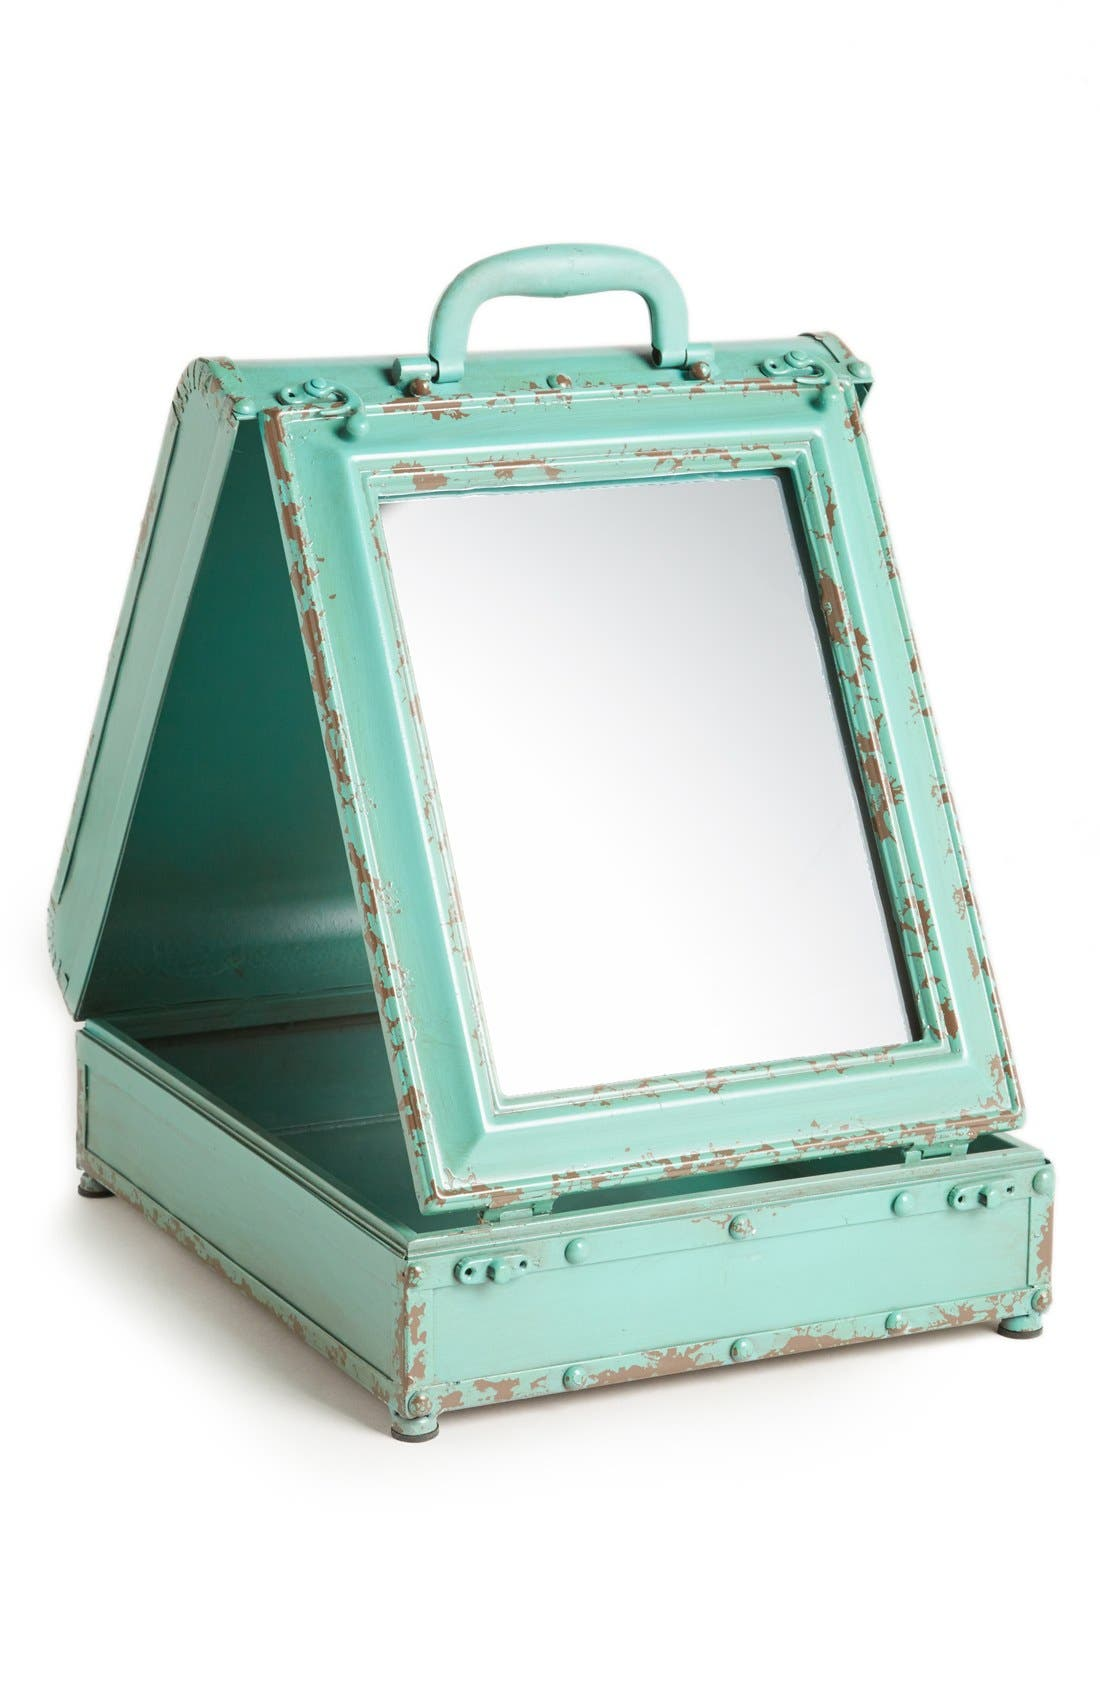 Main Image - Creative Co-Op Folding Trunk Mirror